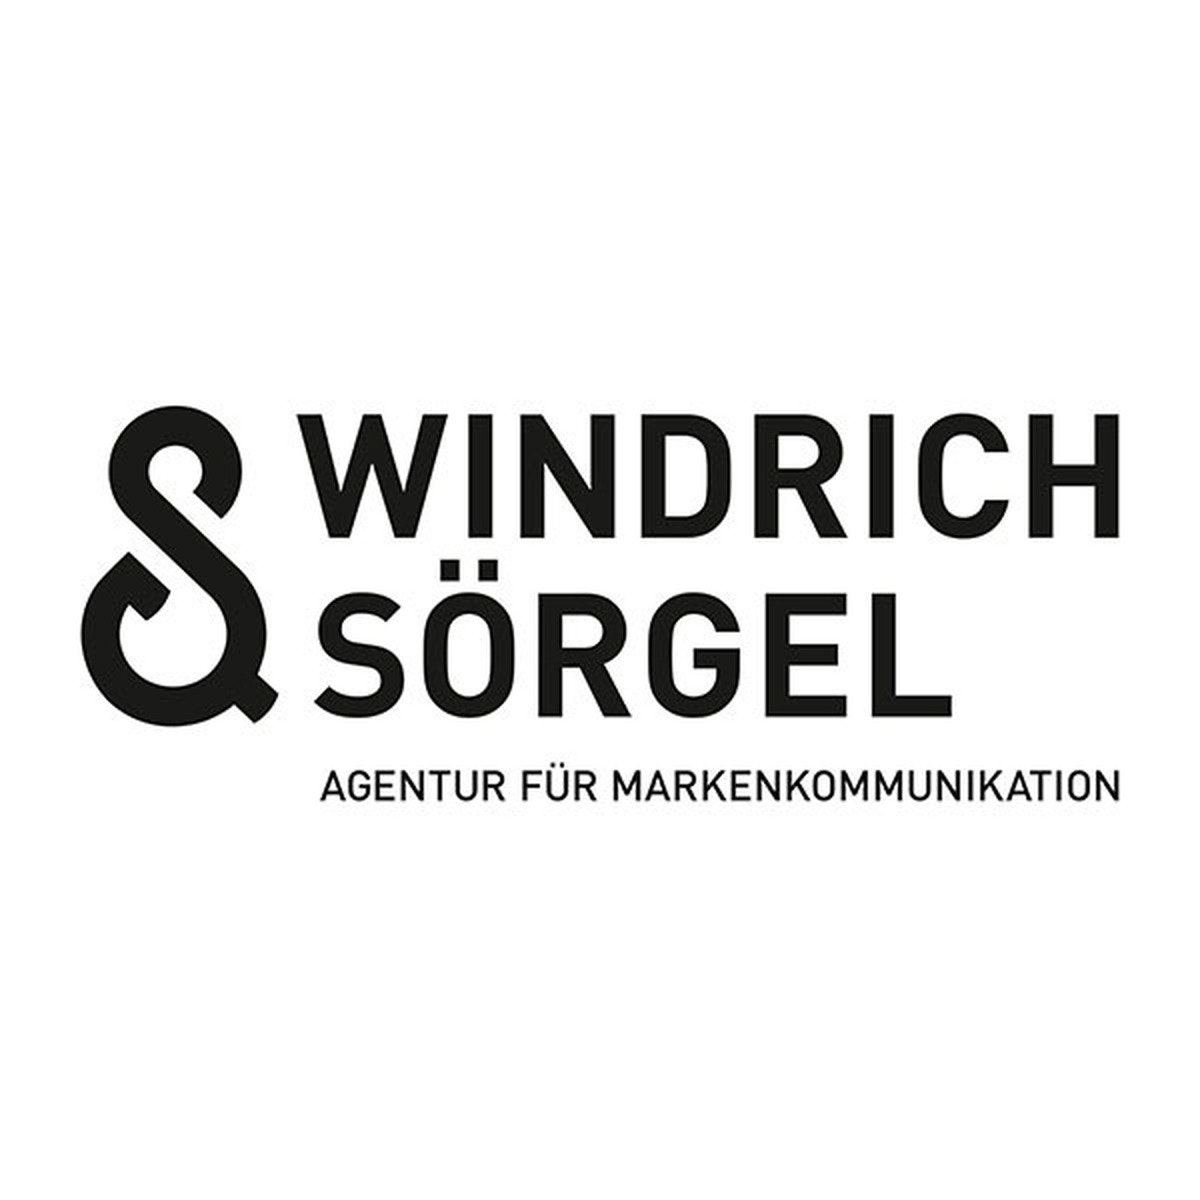 Windrich & Sörgel GmbH & Co. KG